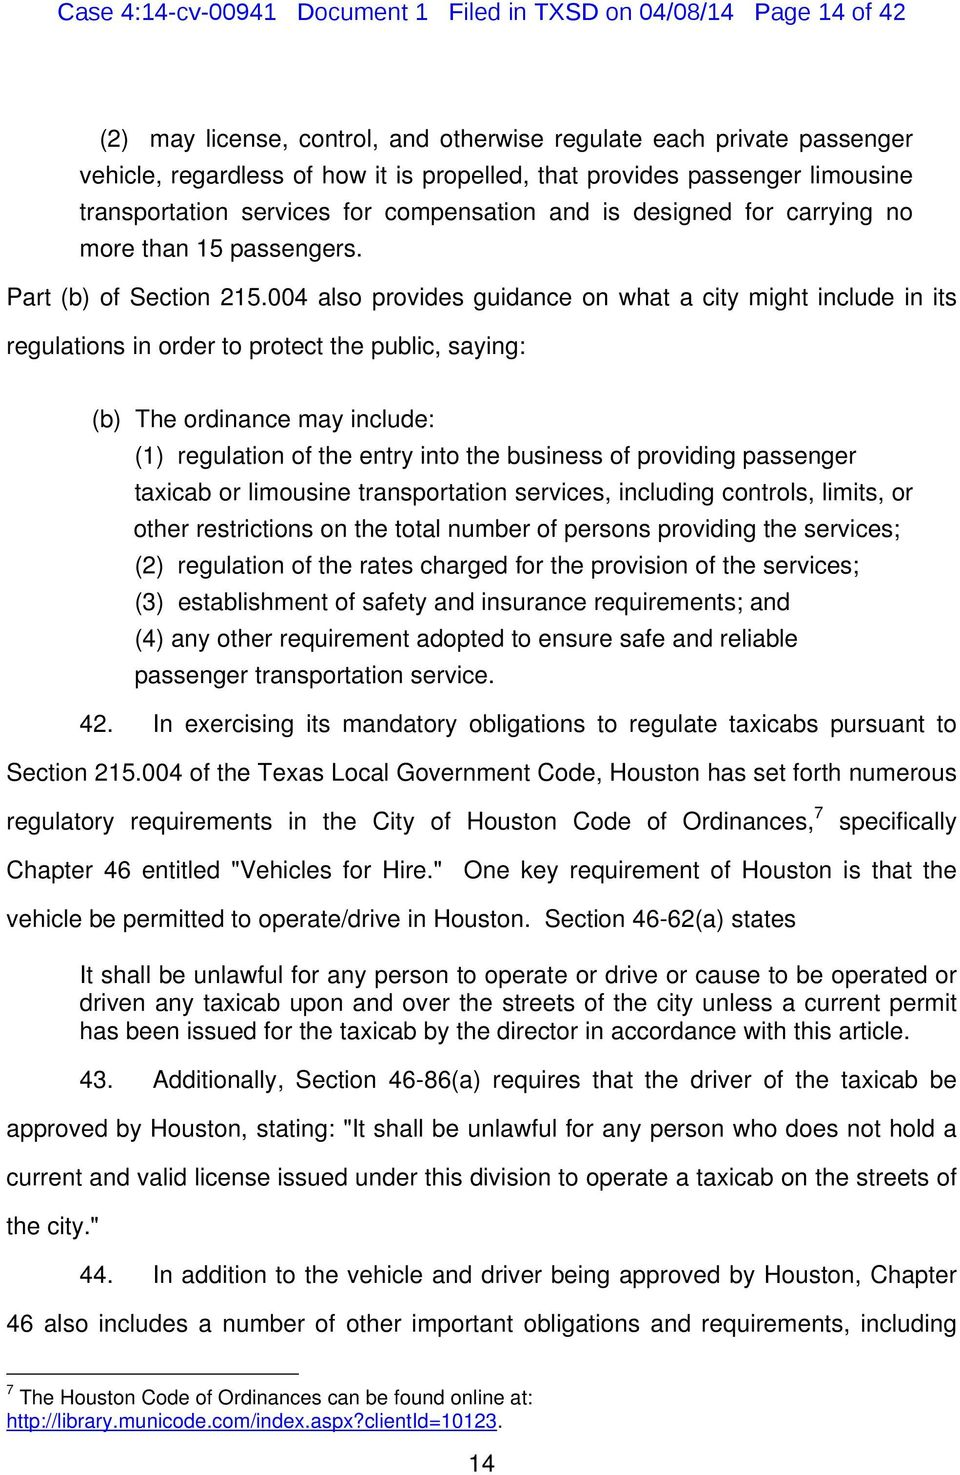 004 also provides guidance on what a city might include in its regulations in order to protect the public, saying: (b) The ordinance may include: (1) regulation of the entry into the business of